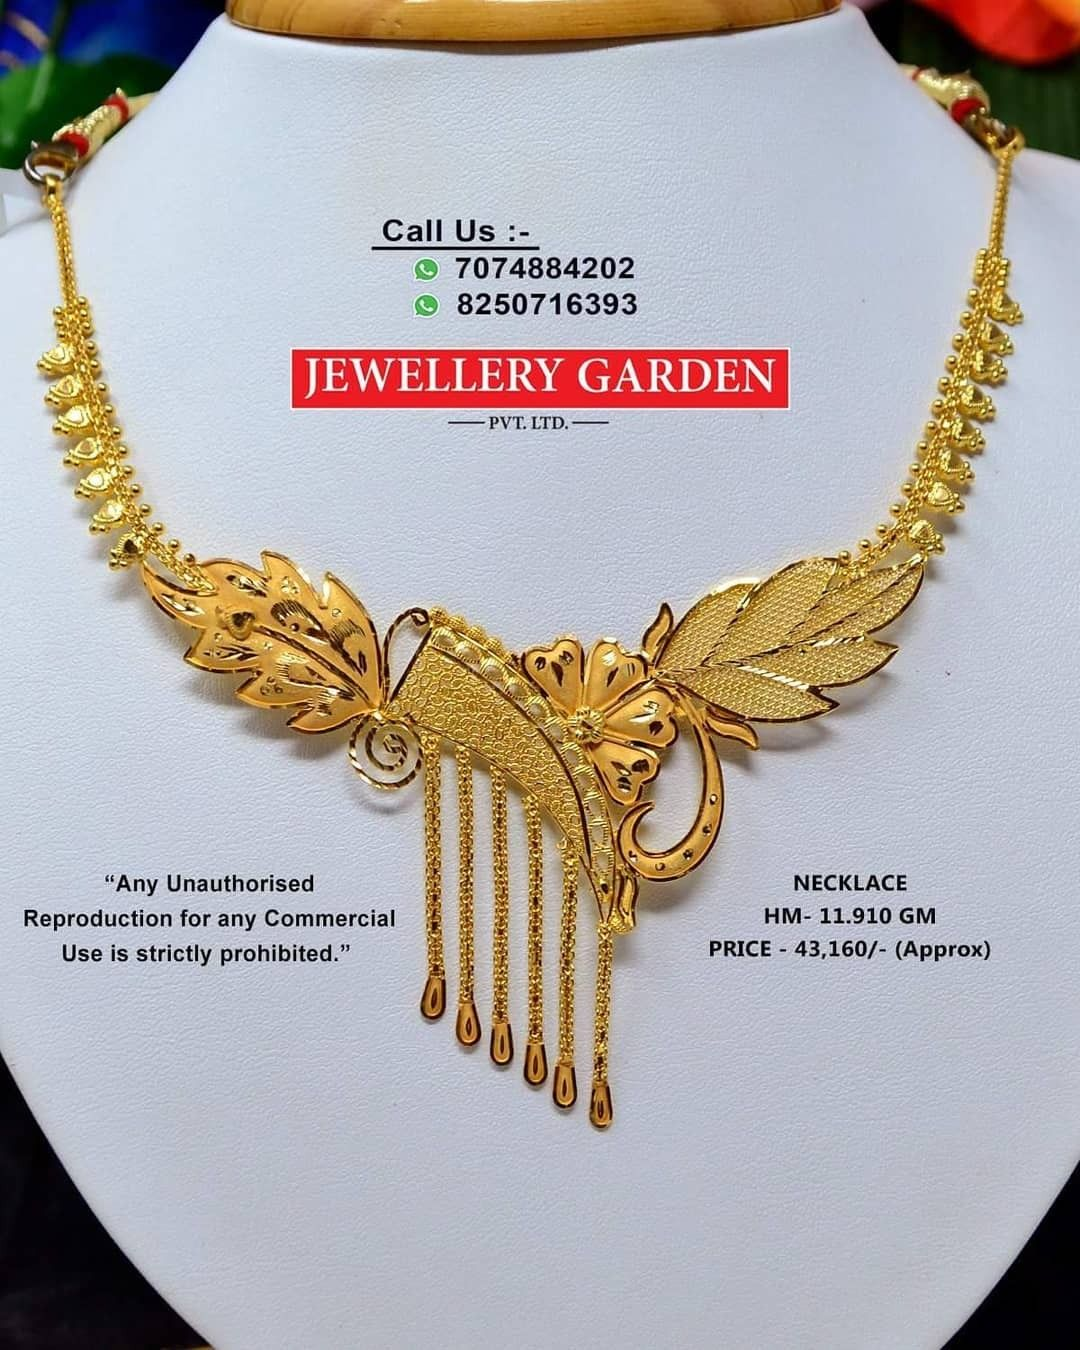 Latest Light Weight Gold Bridal Necklace Designs With Weight Price G Gold Bridal Necklace Bridal Necklace Designs Bridal Necklace